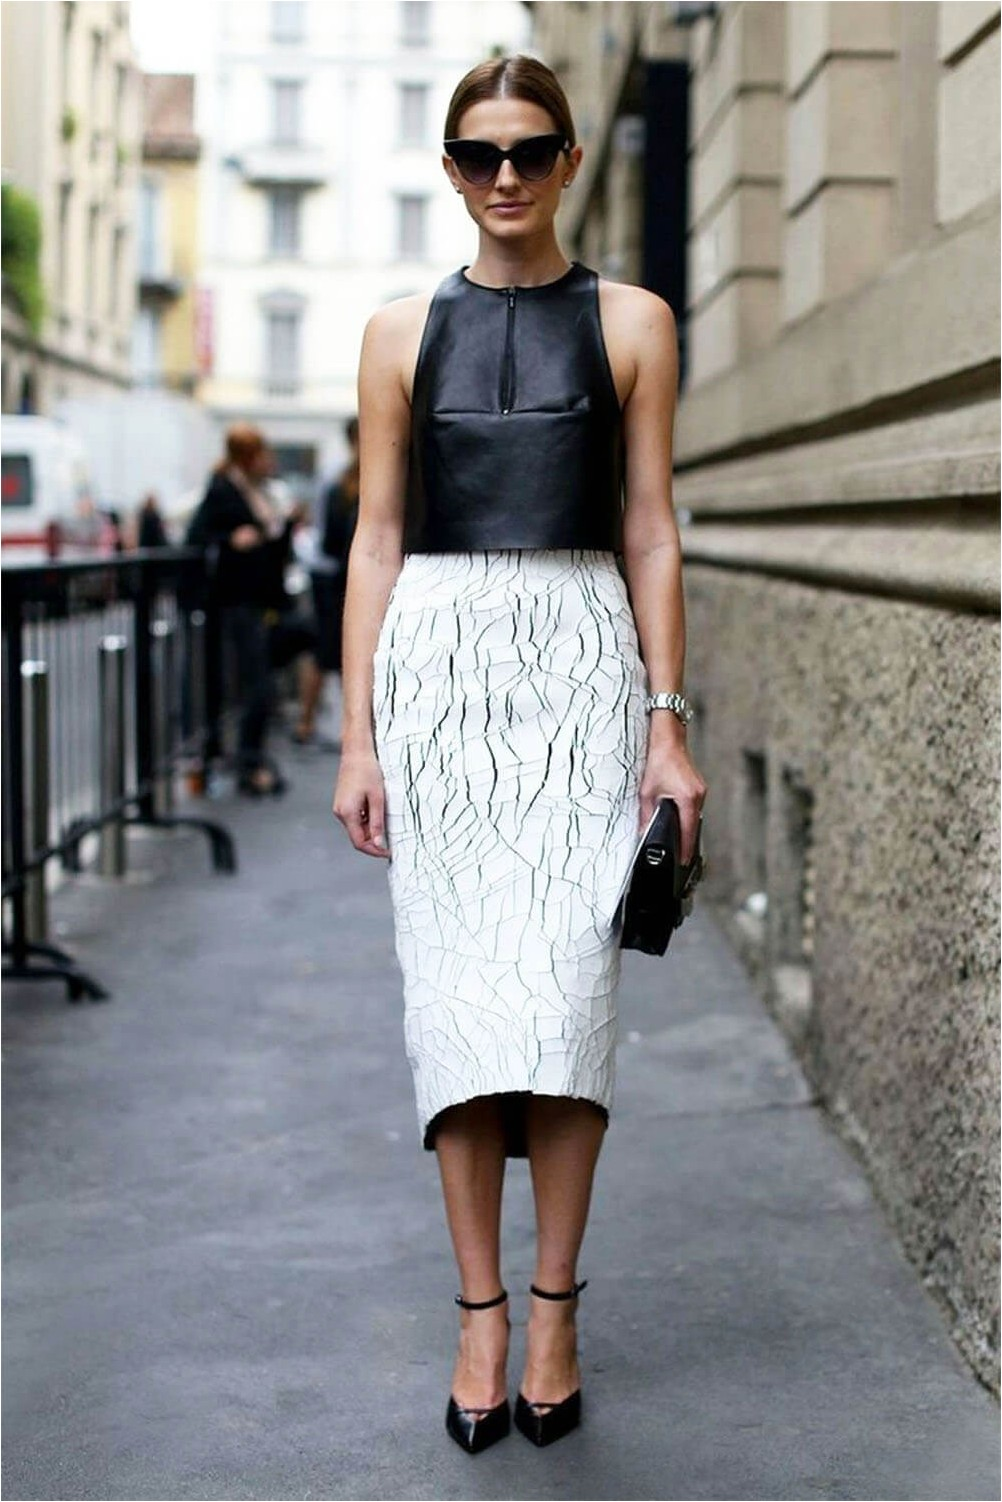 Pencil skirt with shoes